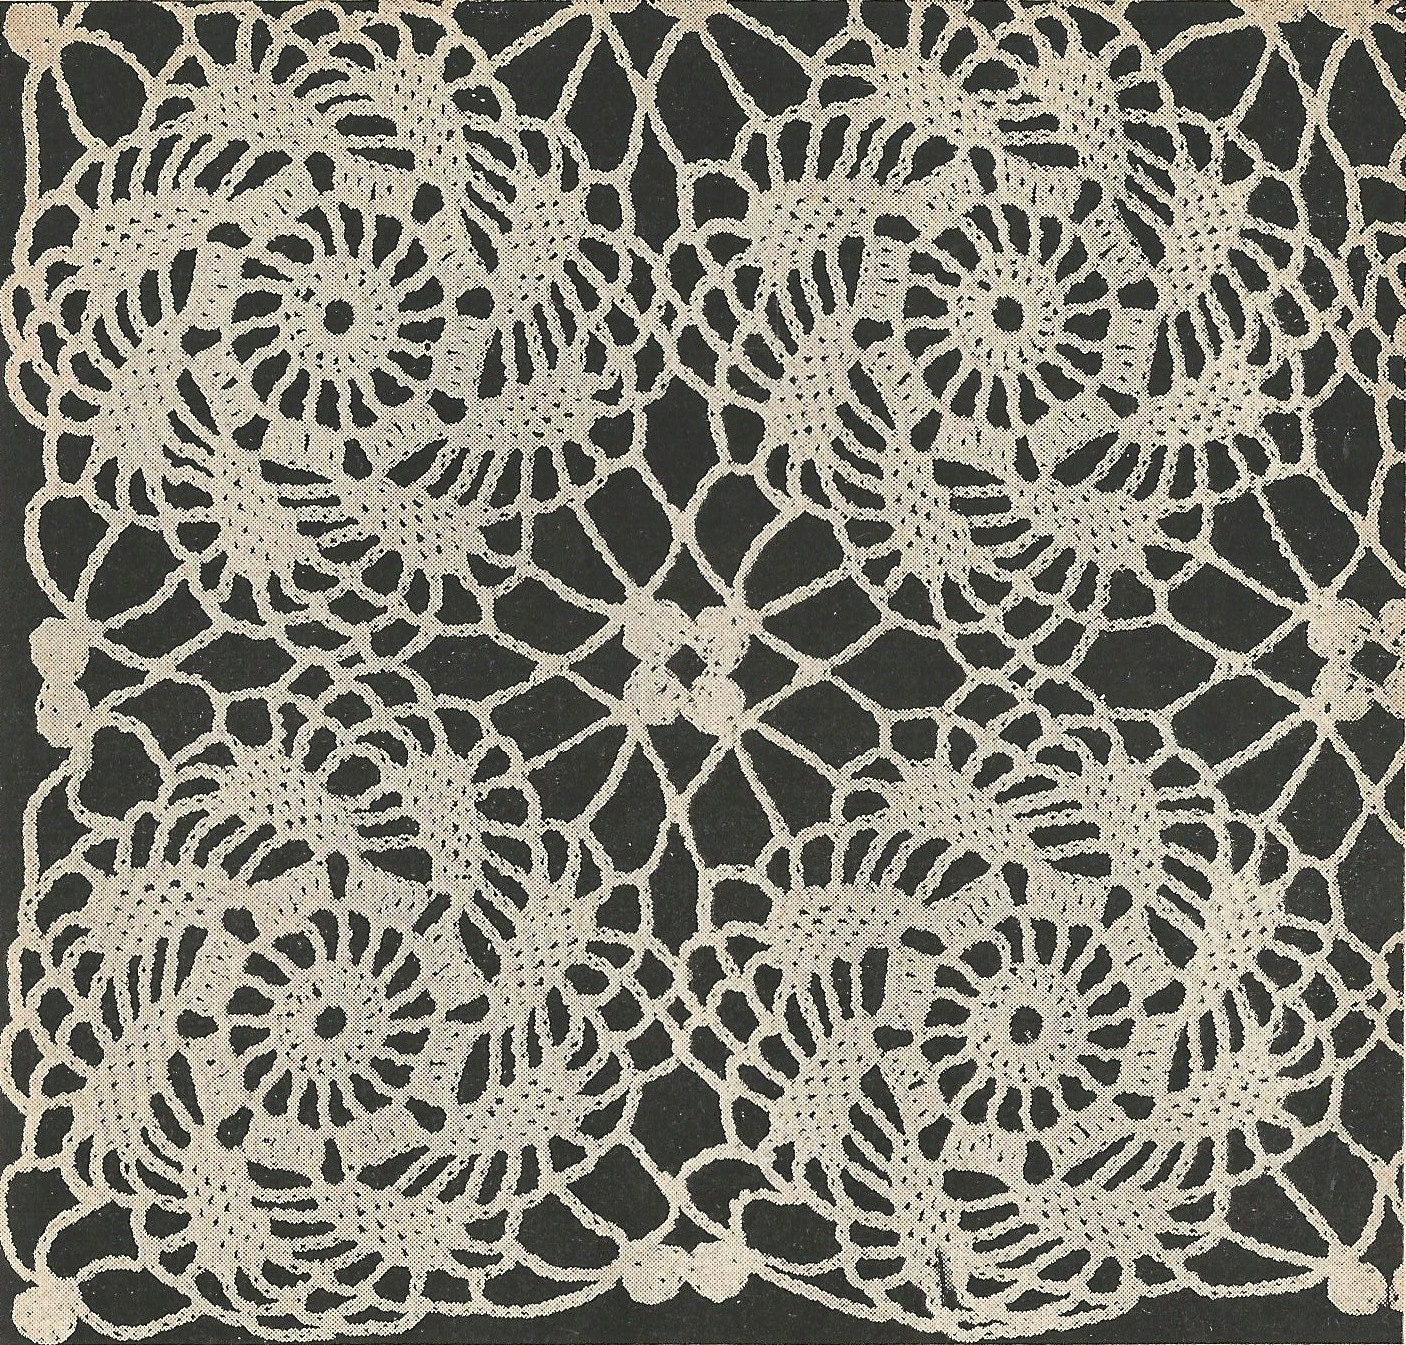 Pinwheel motif crochet pattern from a 1955 workbasket for a lovely this is a digital file bankloansurffo Choice Image